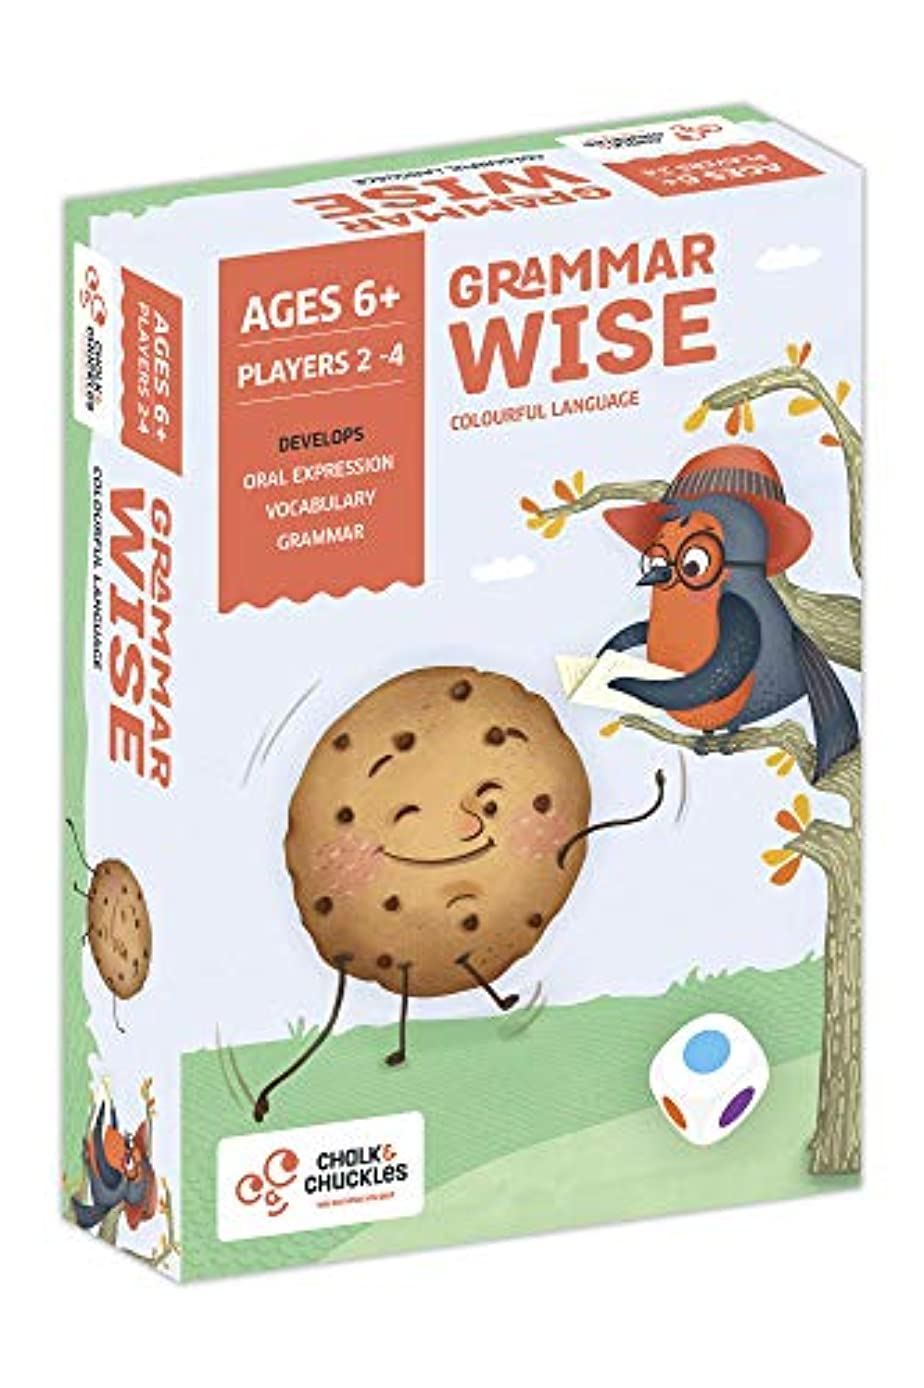 Chalk and Chuckles Grammar Wise Colourful Language Game